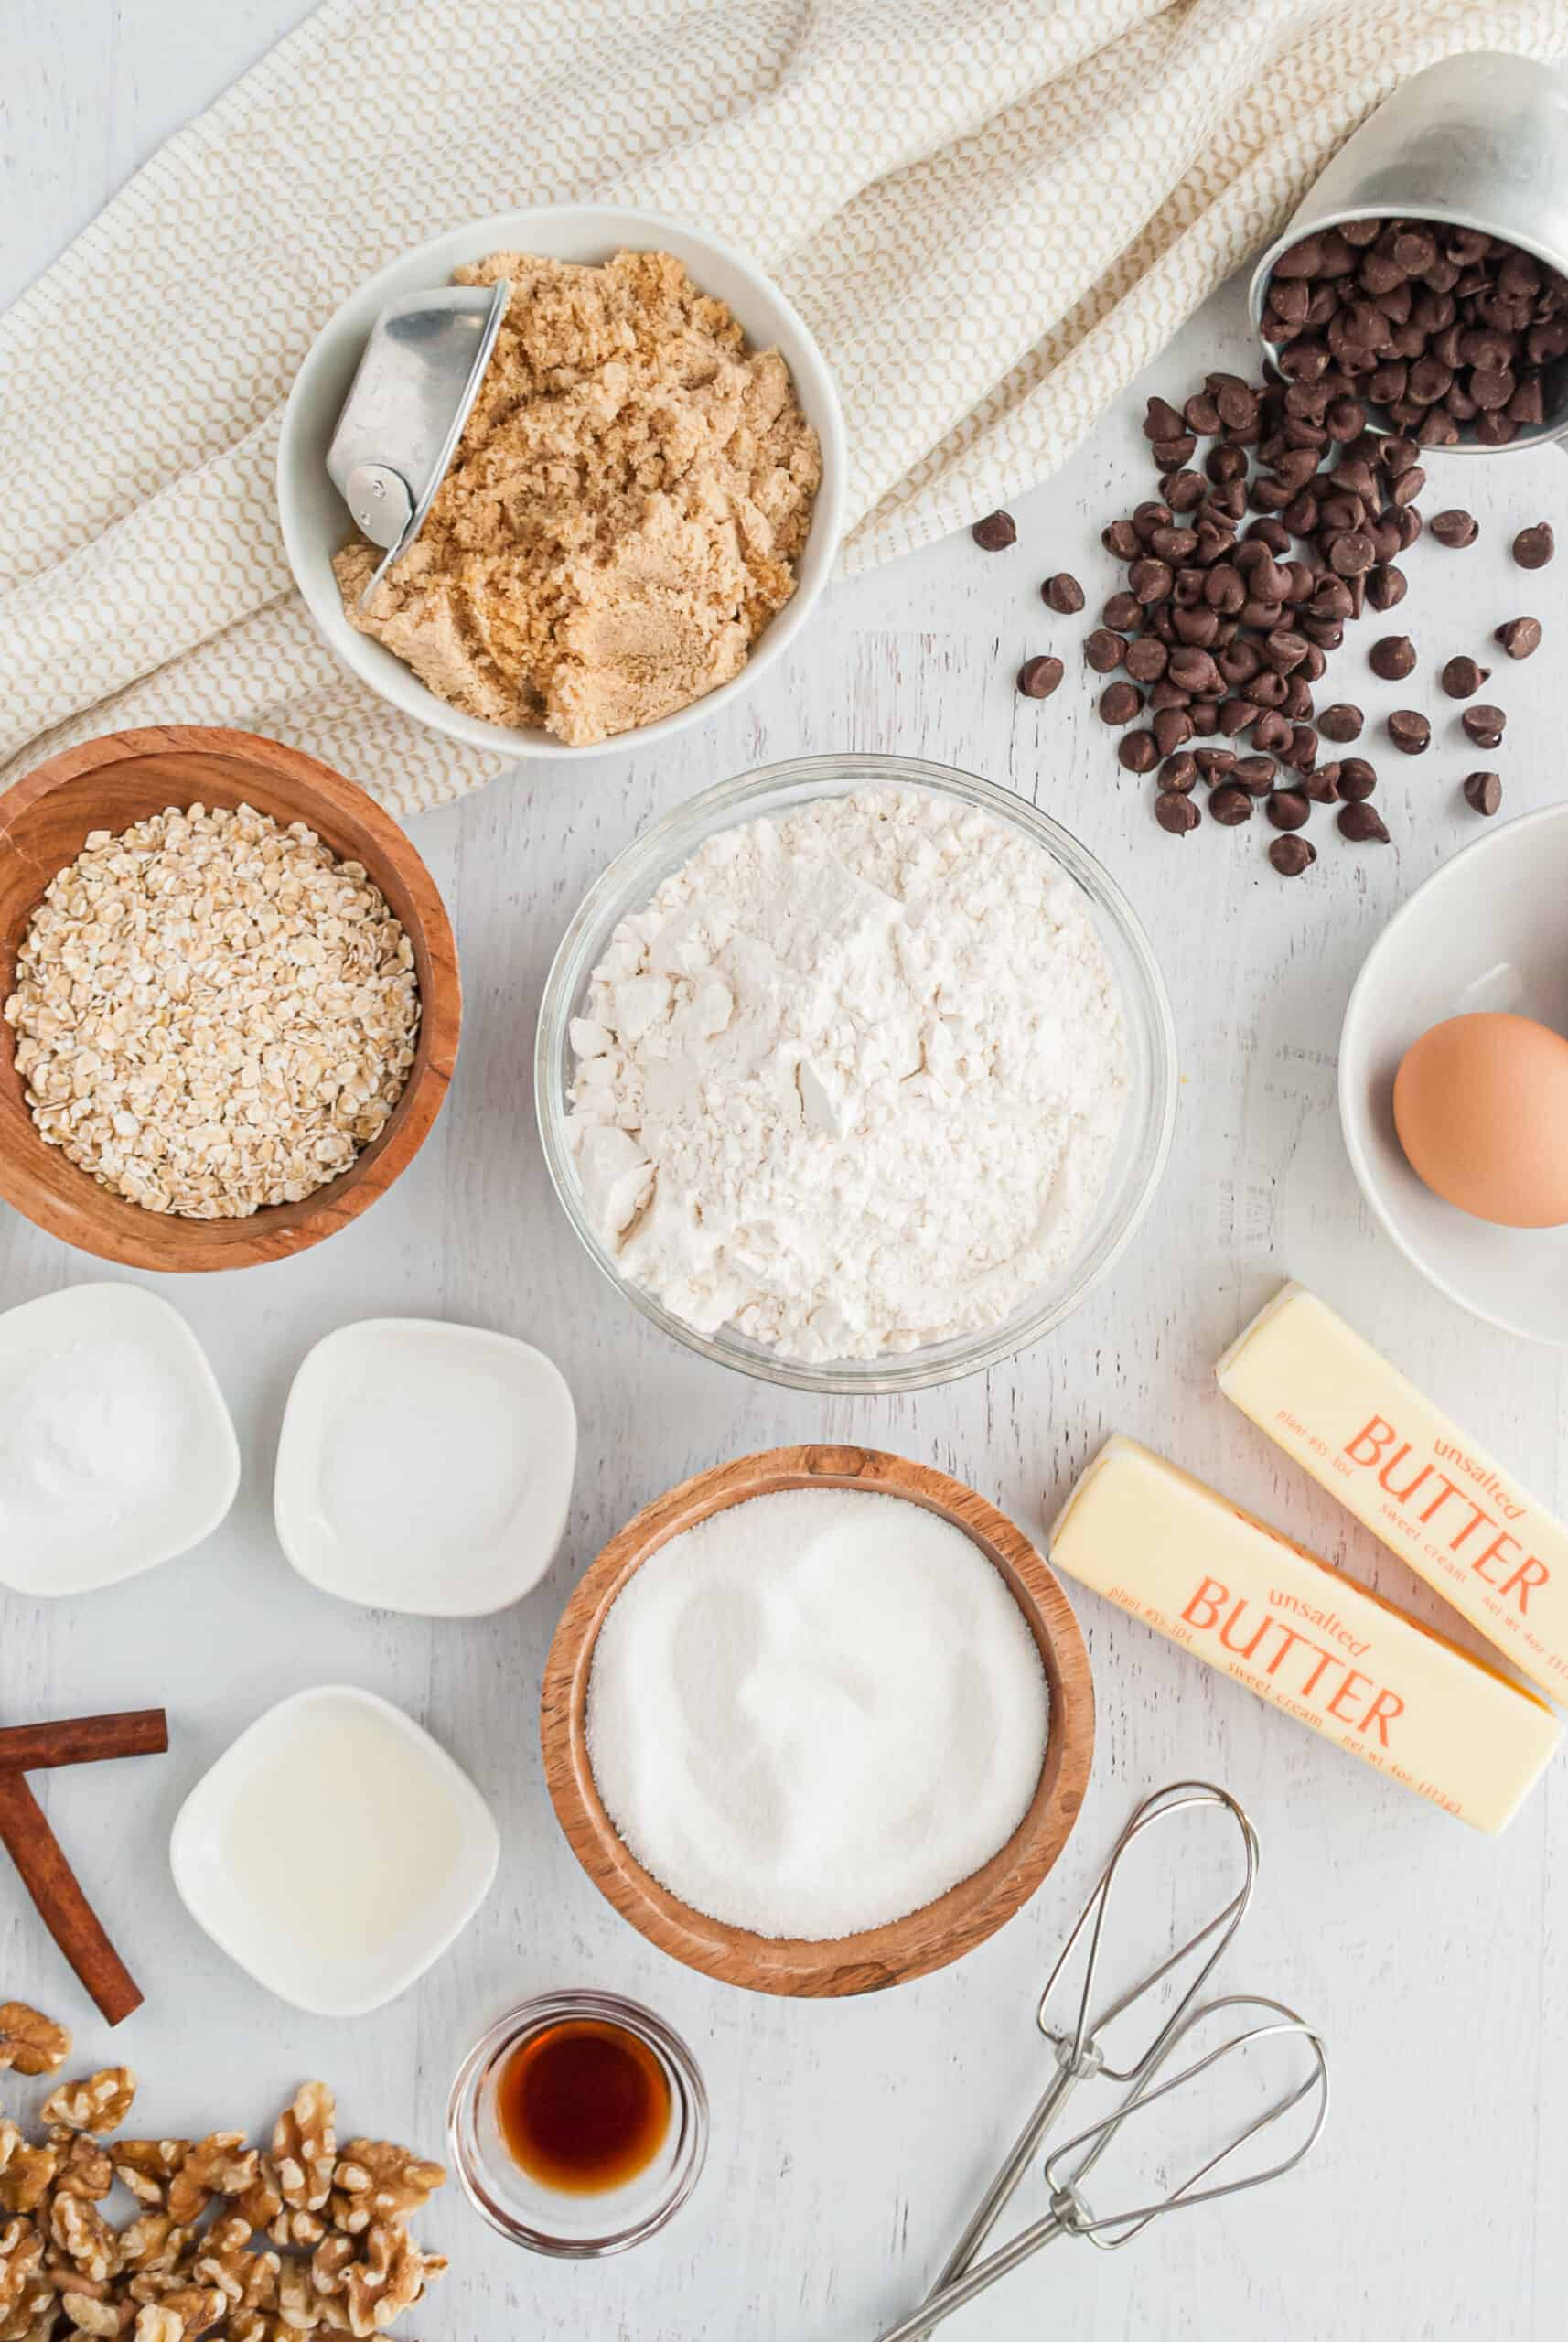 Ingredients to make Doubletree Chocolate Chip Cookies.